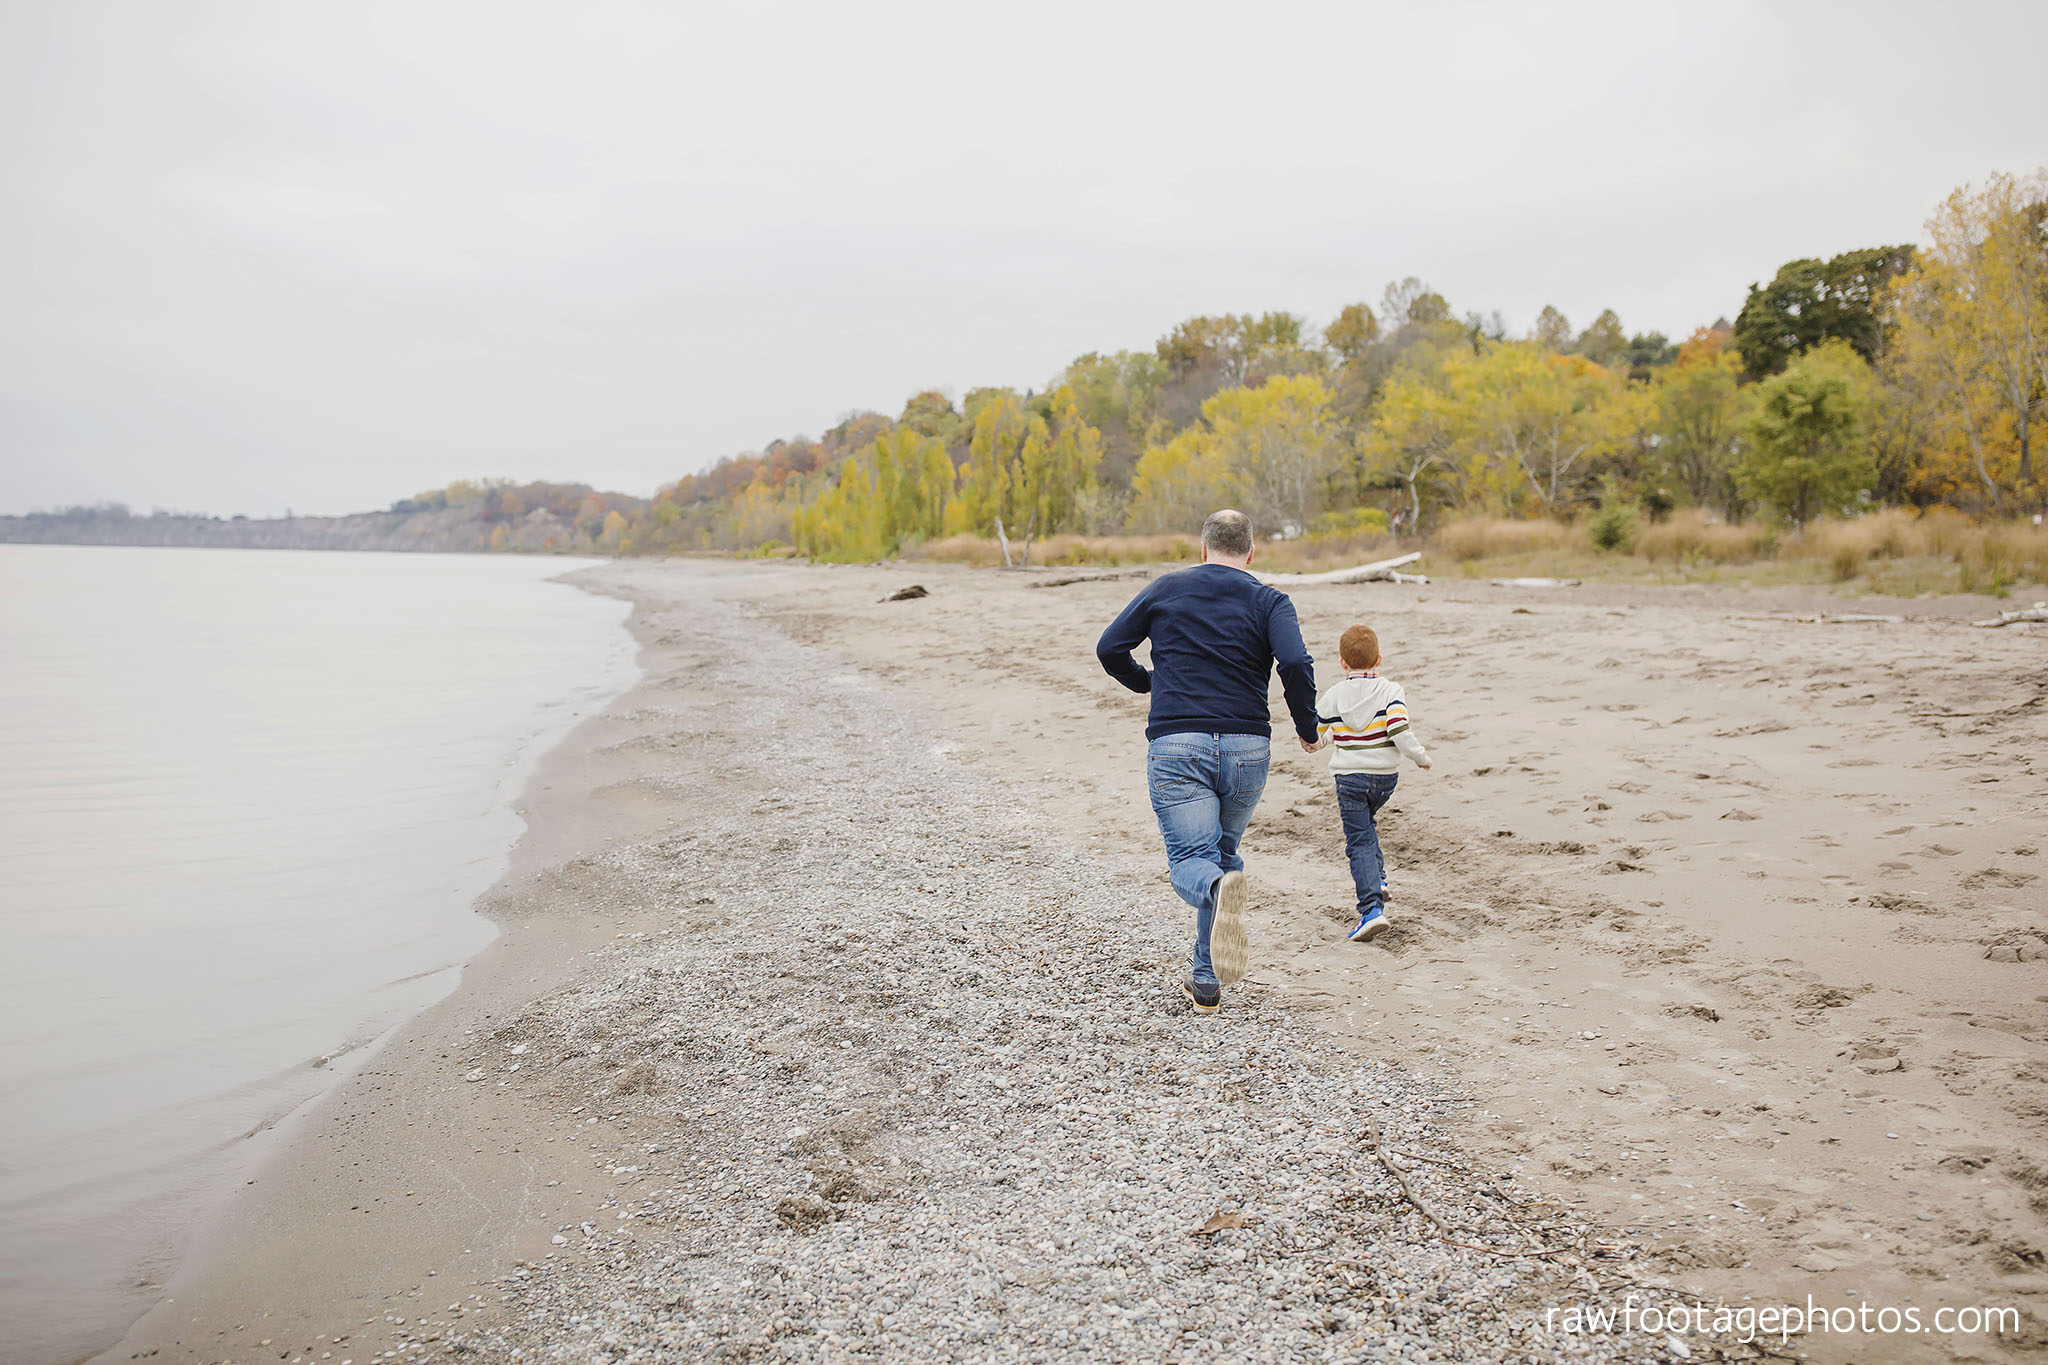 london_ontario_family_photographer-port_stanley_photography-raw_footage_photography-family_photos-beach_photos-fall_family_photos-lifestyle_family_photography-candid_photographer007.jpg